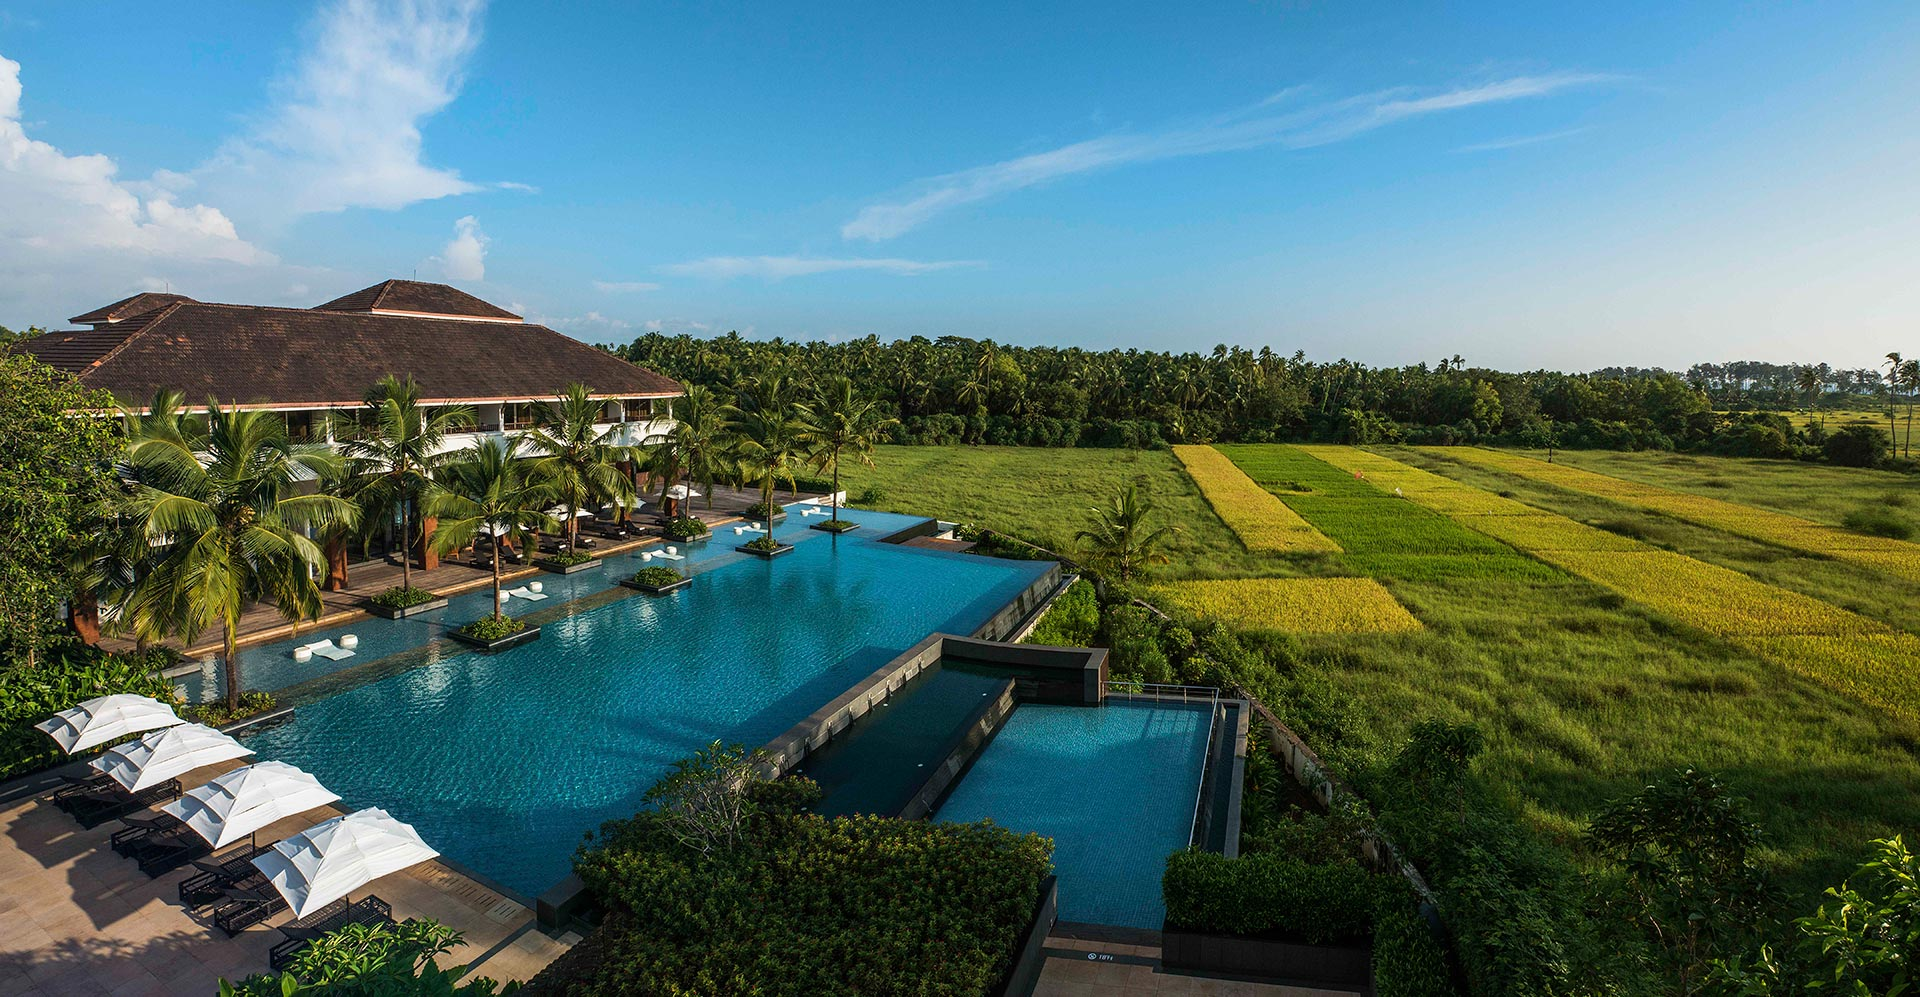 CELEBRATE LOVE WITH A LONG WEEKEND GETAWAY AT ALILA DIWA GOA